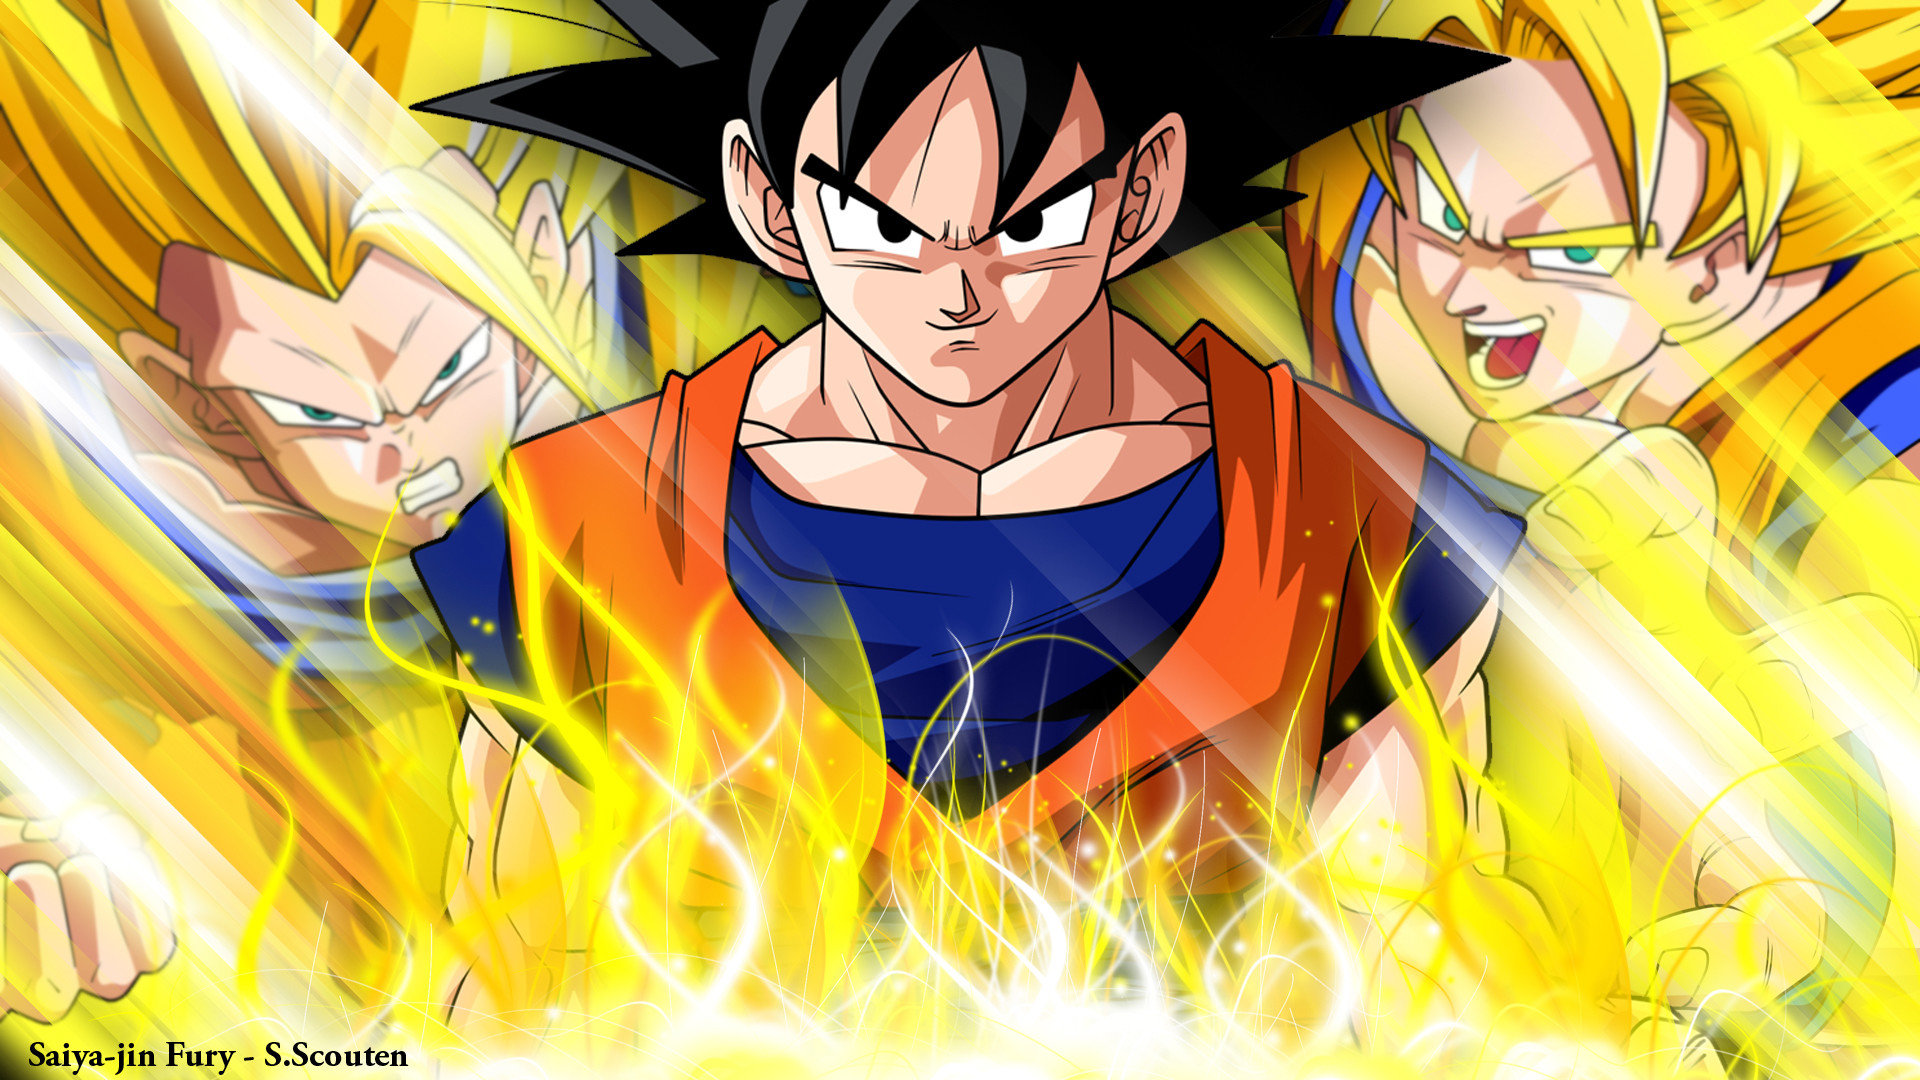 Download Full Hd Goku Pc Wallpaper Id461842 For Free